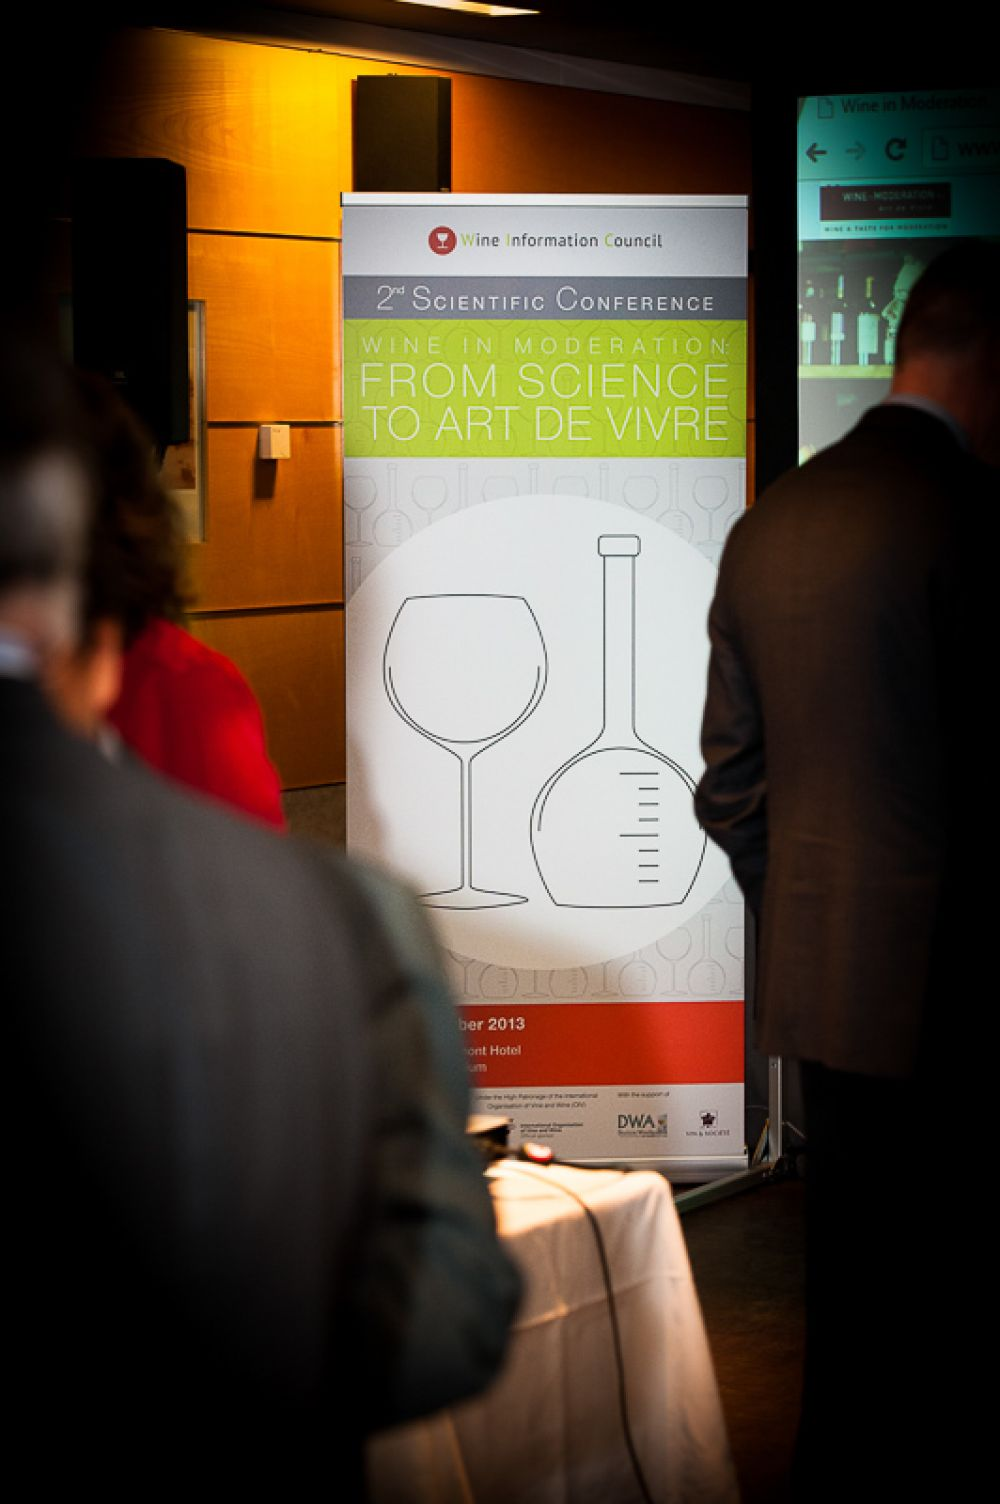 2nd Wine Information Council Scientific Conference was a success !